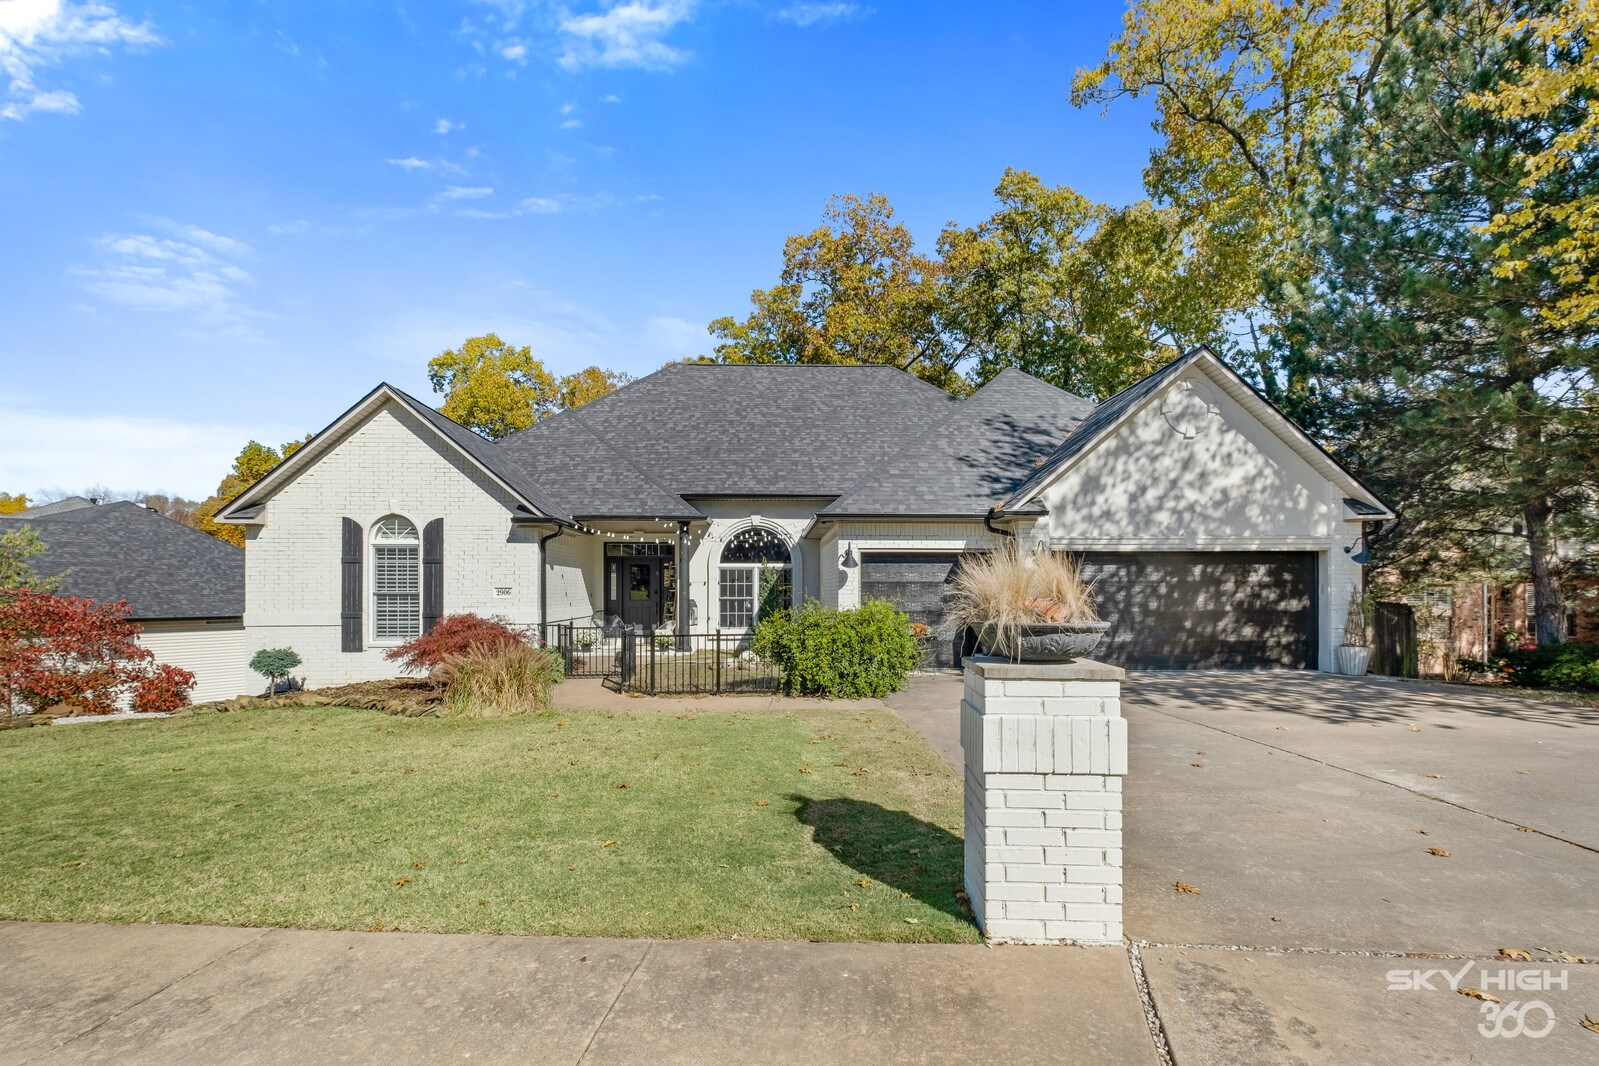 Luxury home for sale in the heart of Bentonville, Arkansas